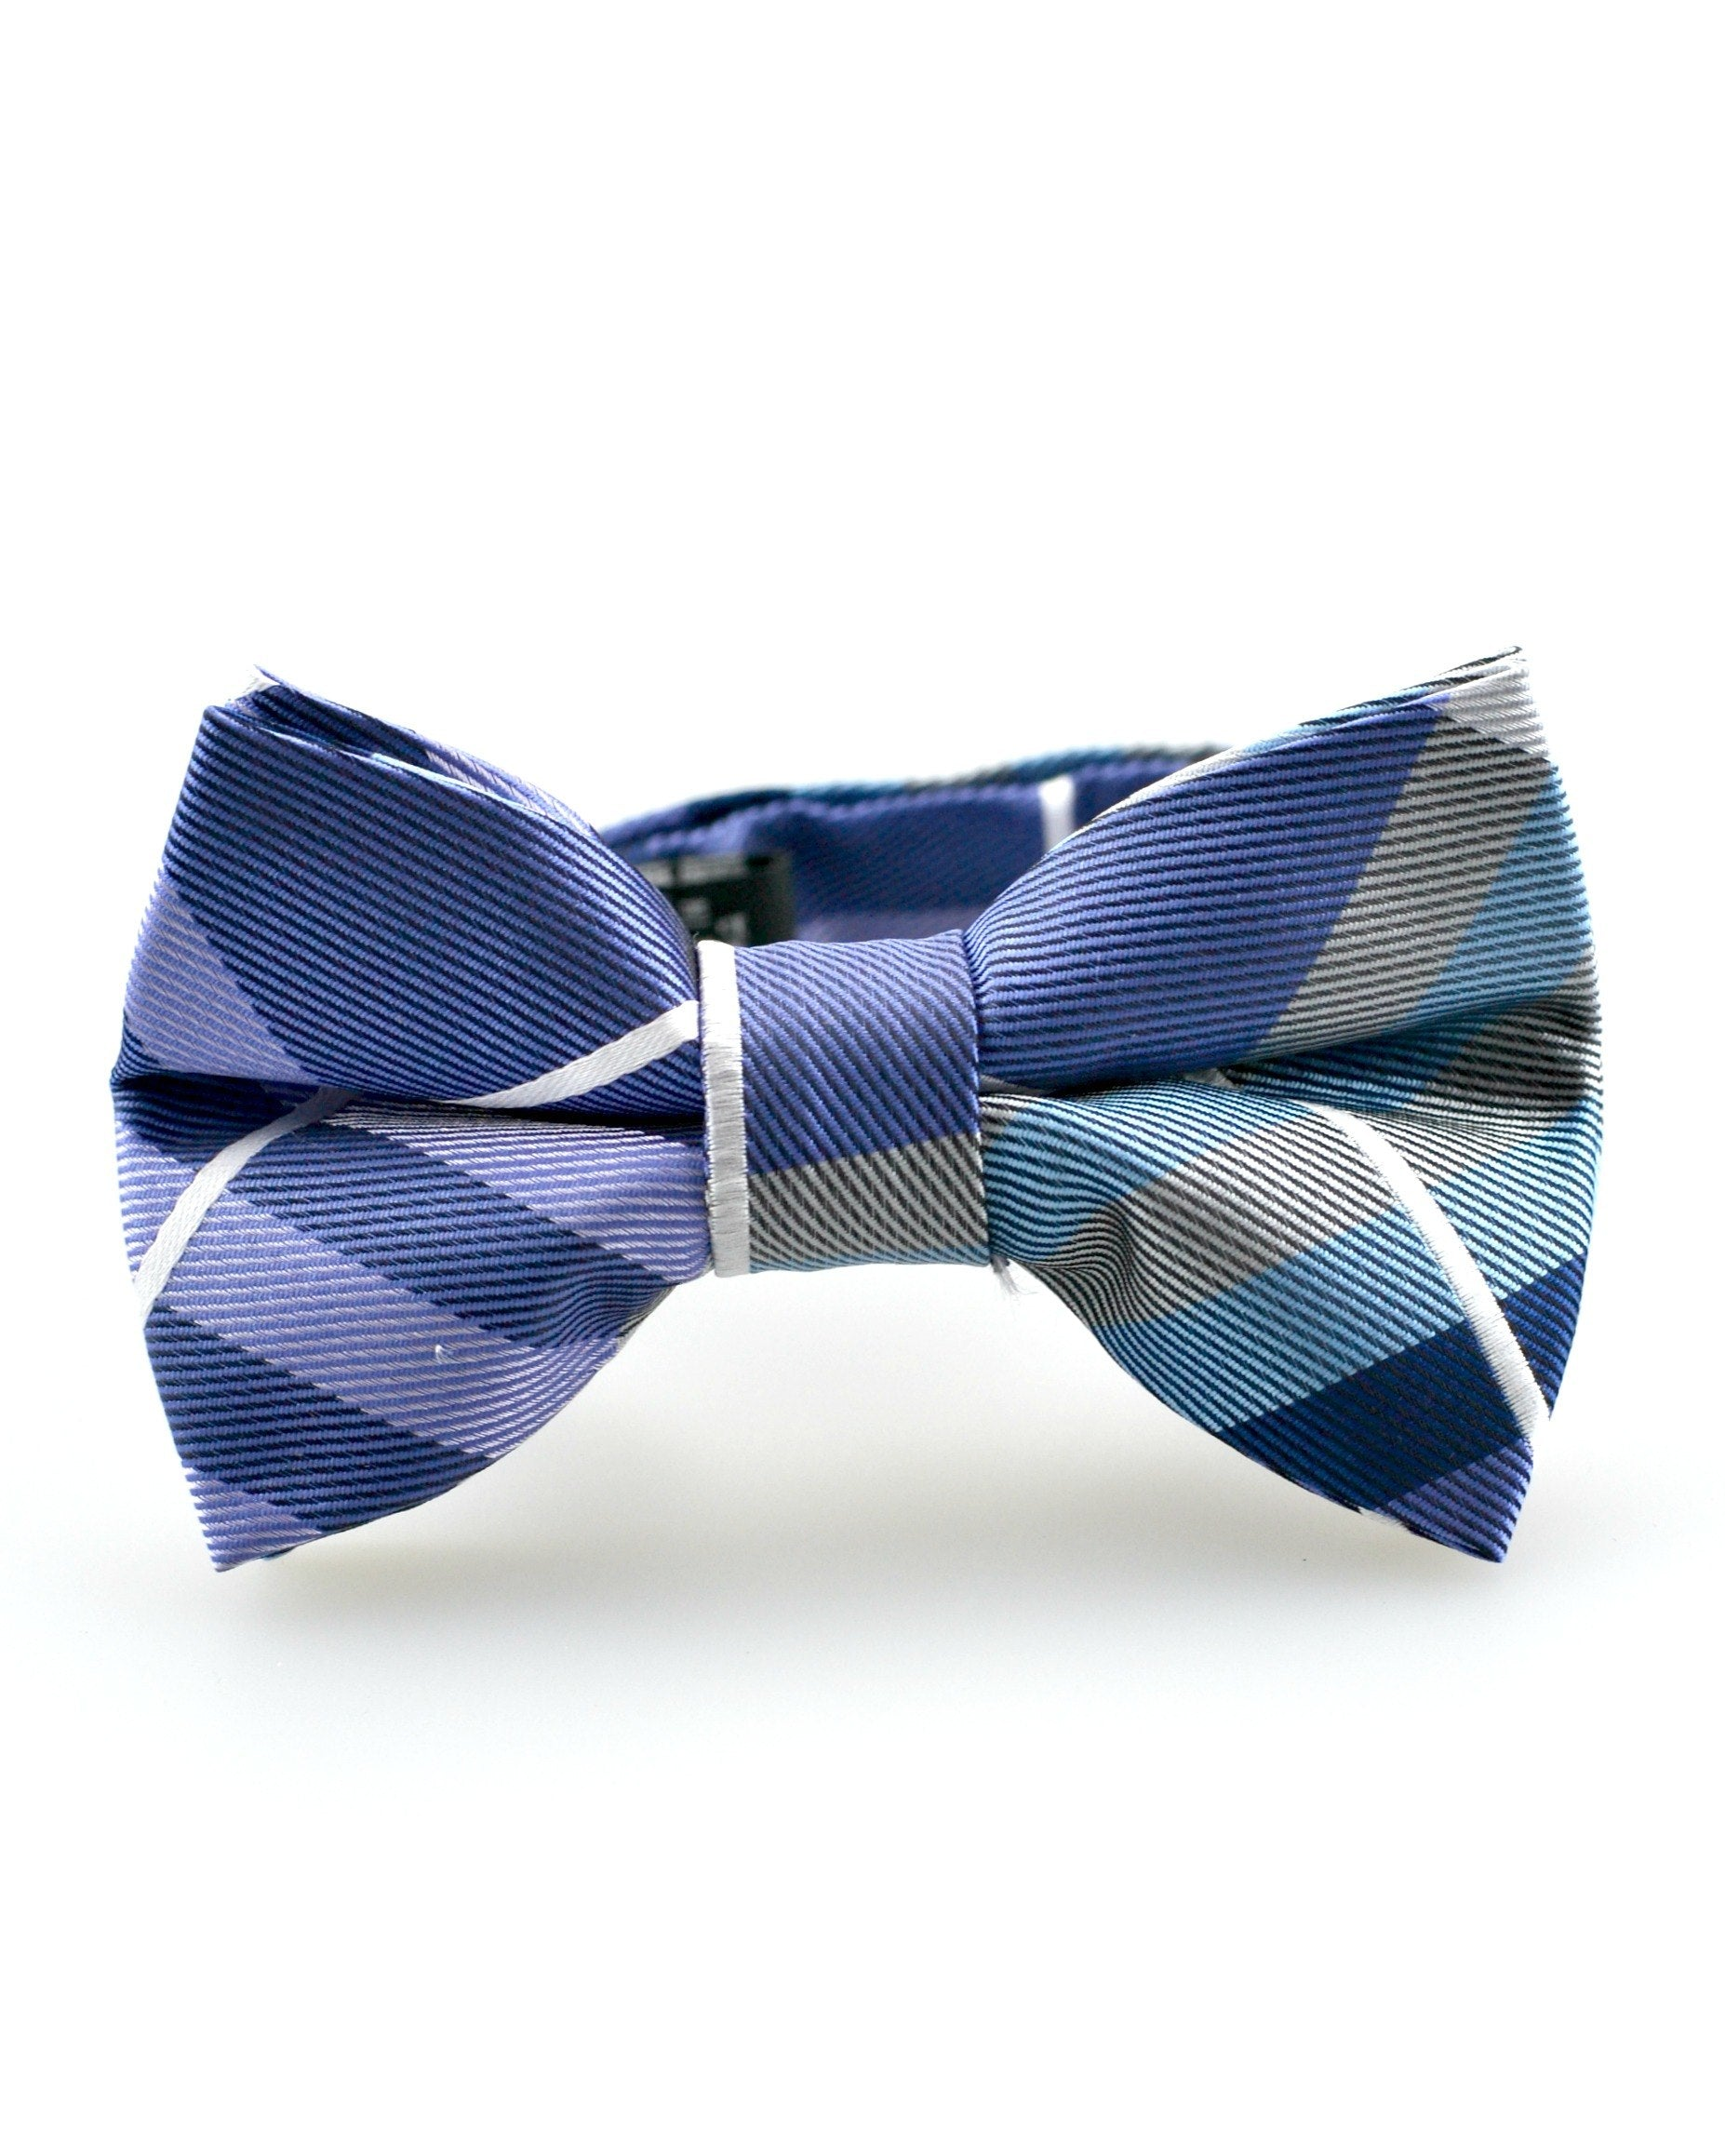 violet-and-silver-plaid-bow-tie.jpg